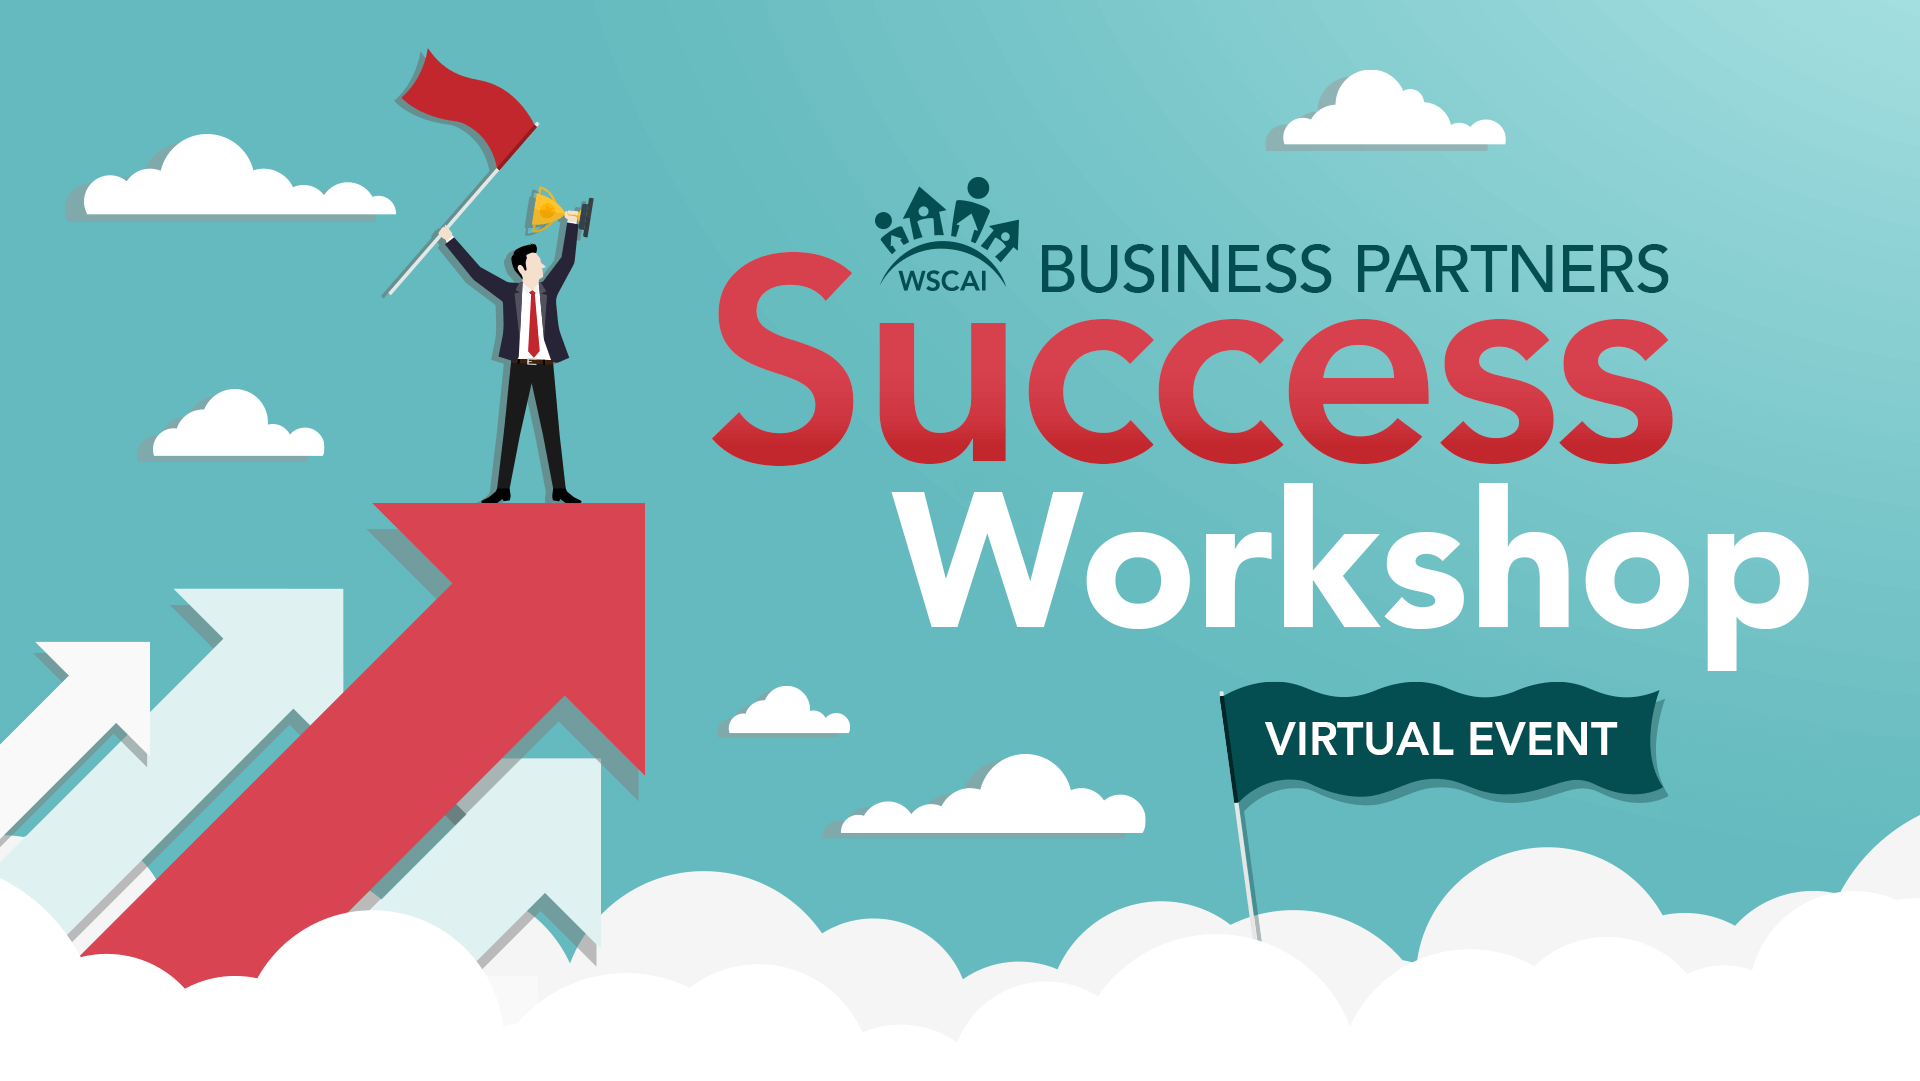 Business Partners Success Workshop - Virtual Event - March 30